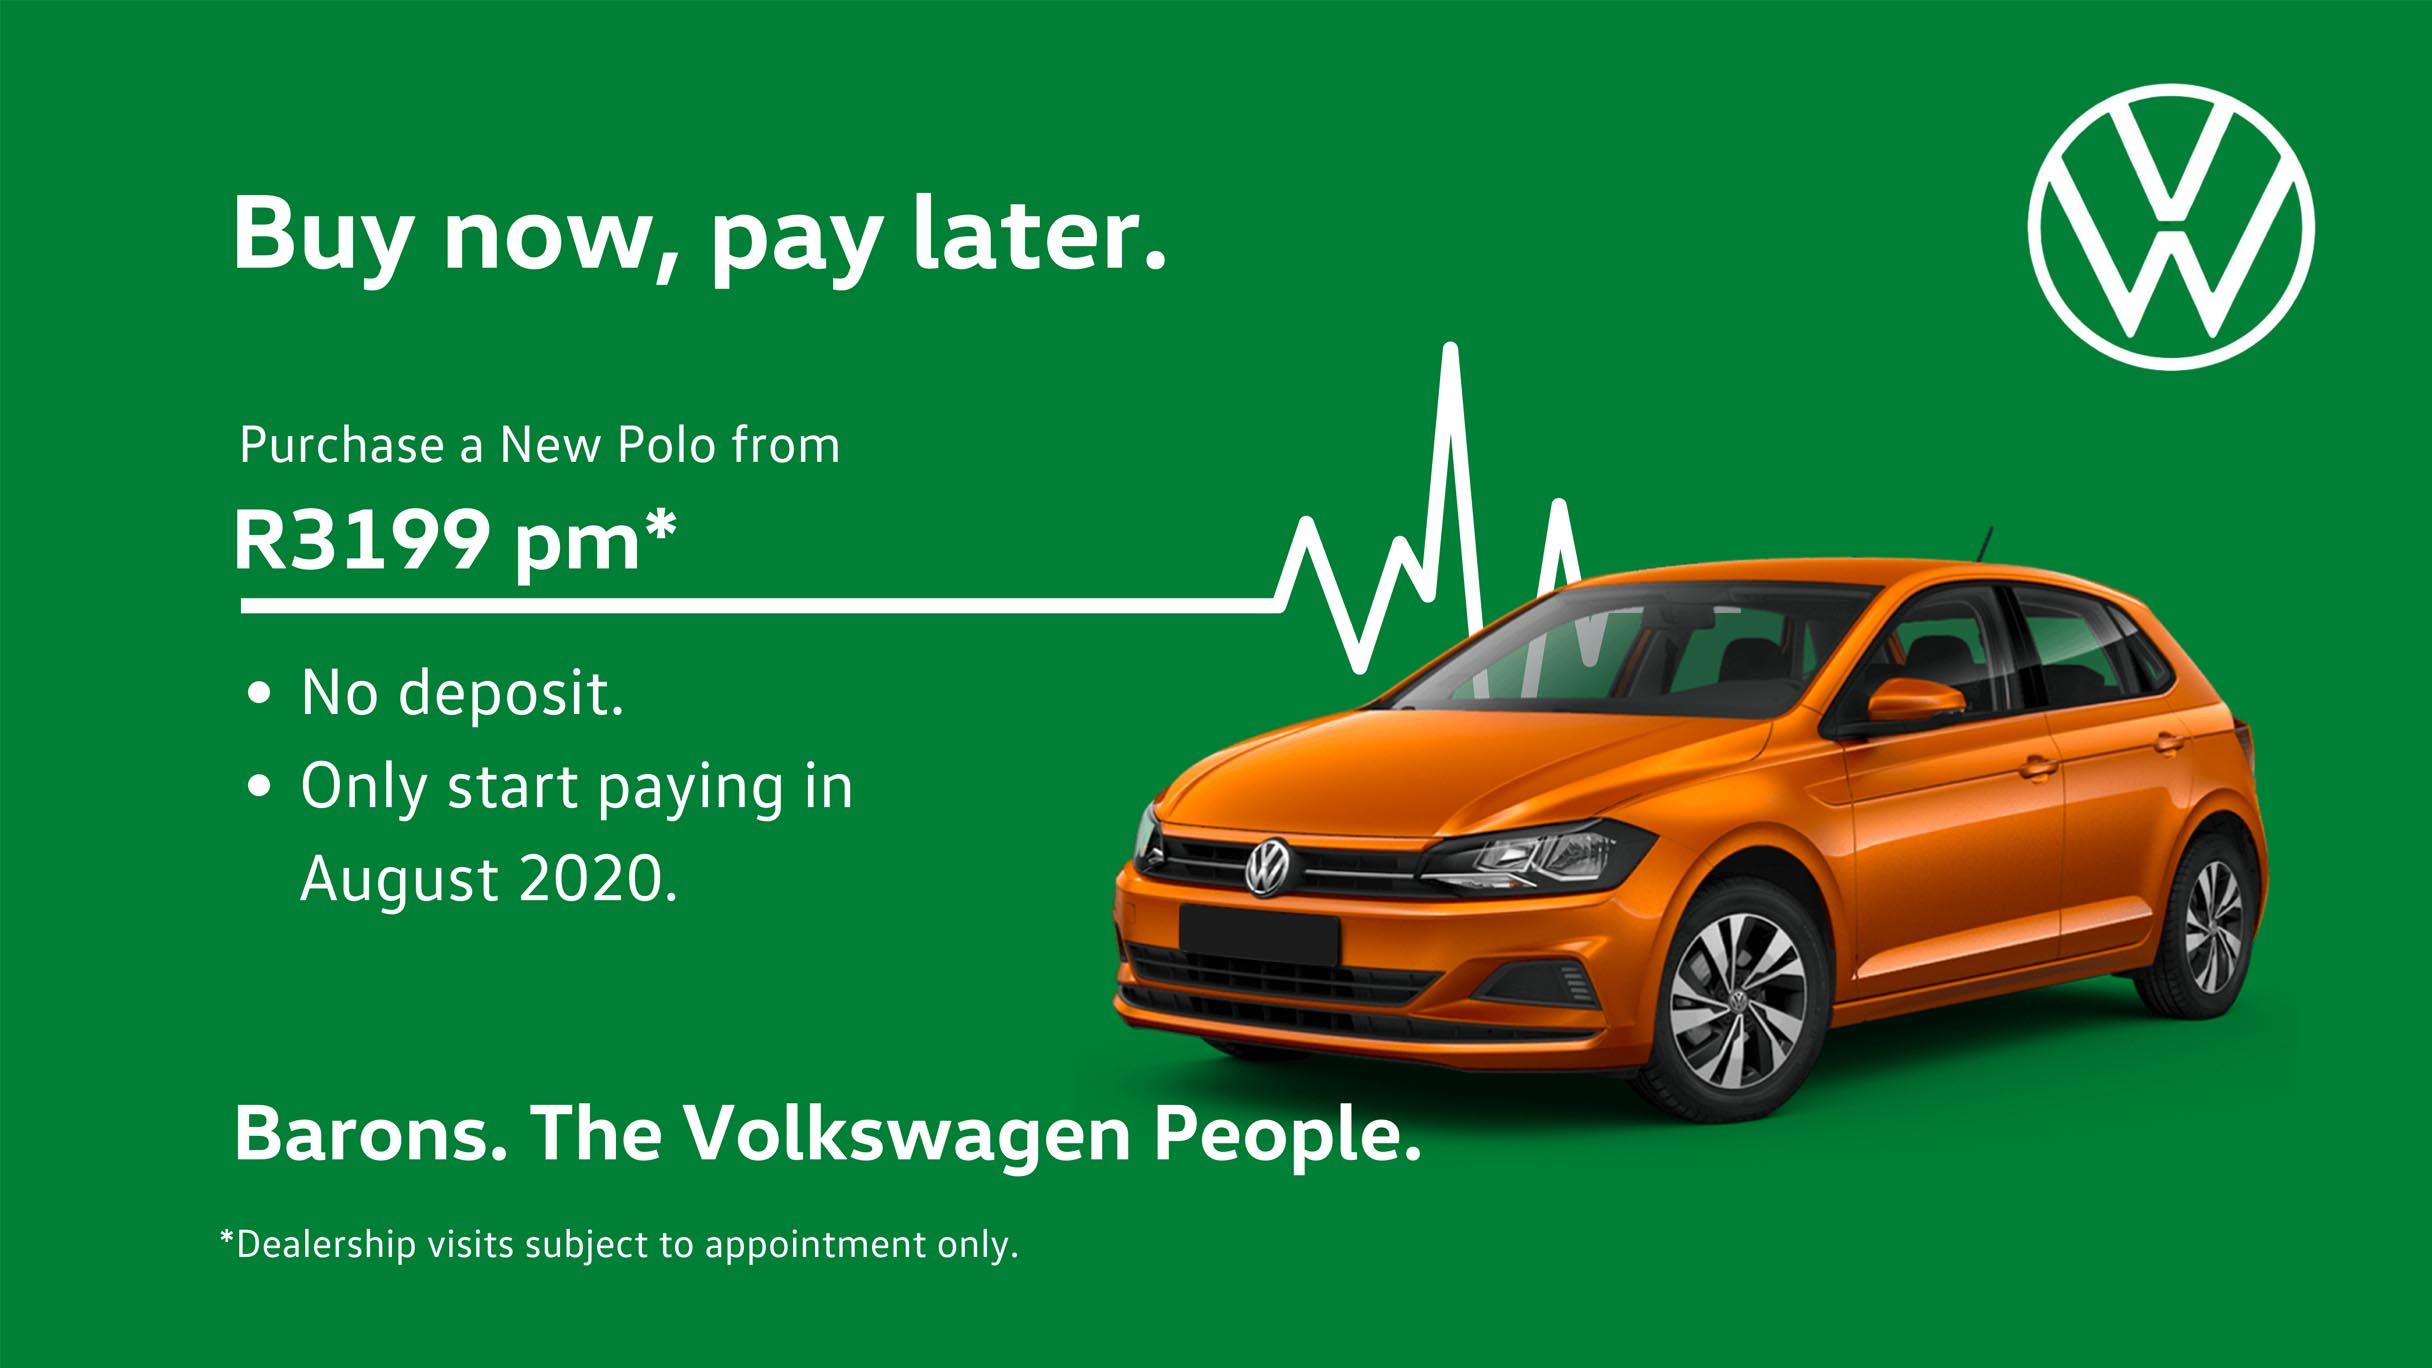 Barons VW no deposit Polo offer